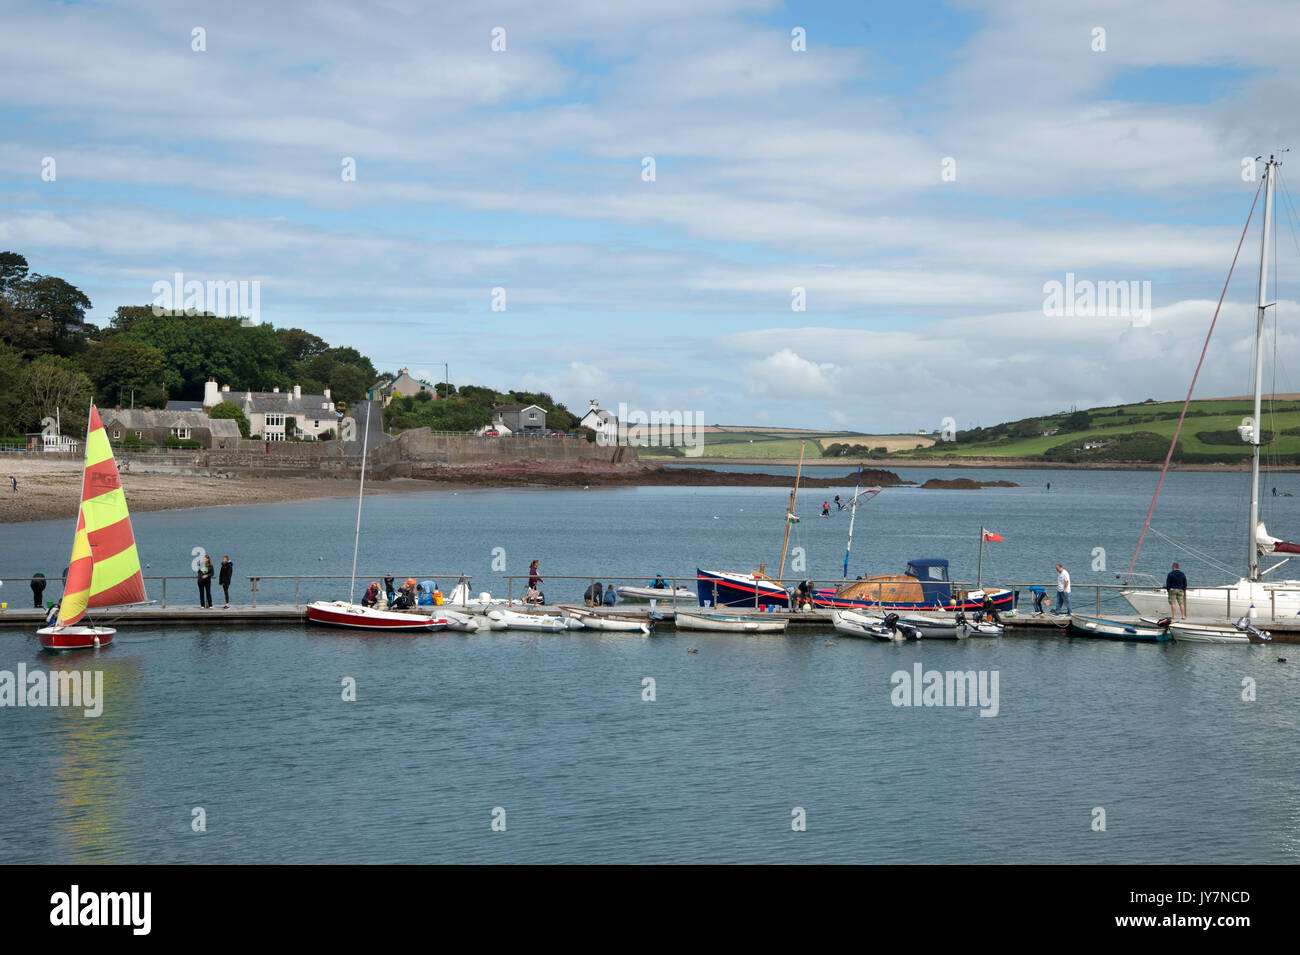 Dale, West Wales. Small boats in the harbour by the pontoon about to set sail. - Stock Image